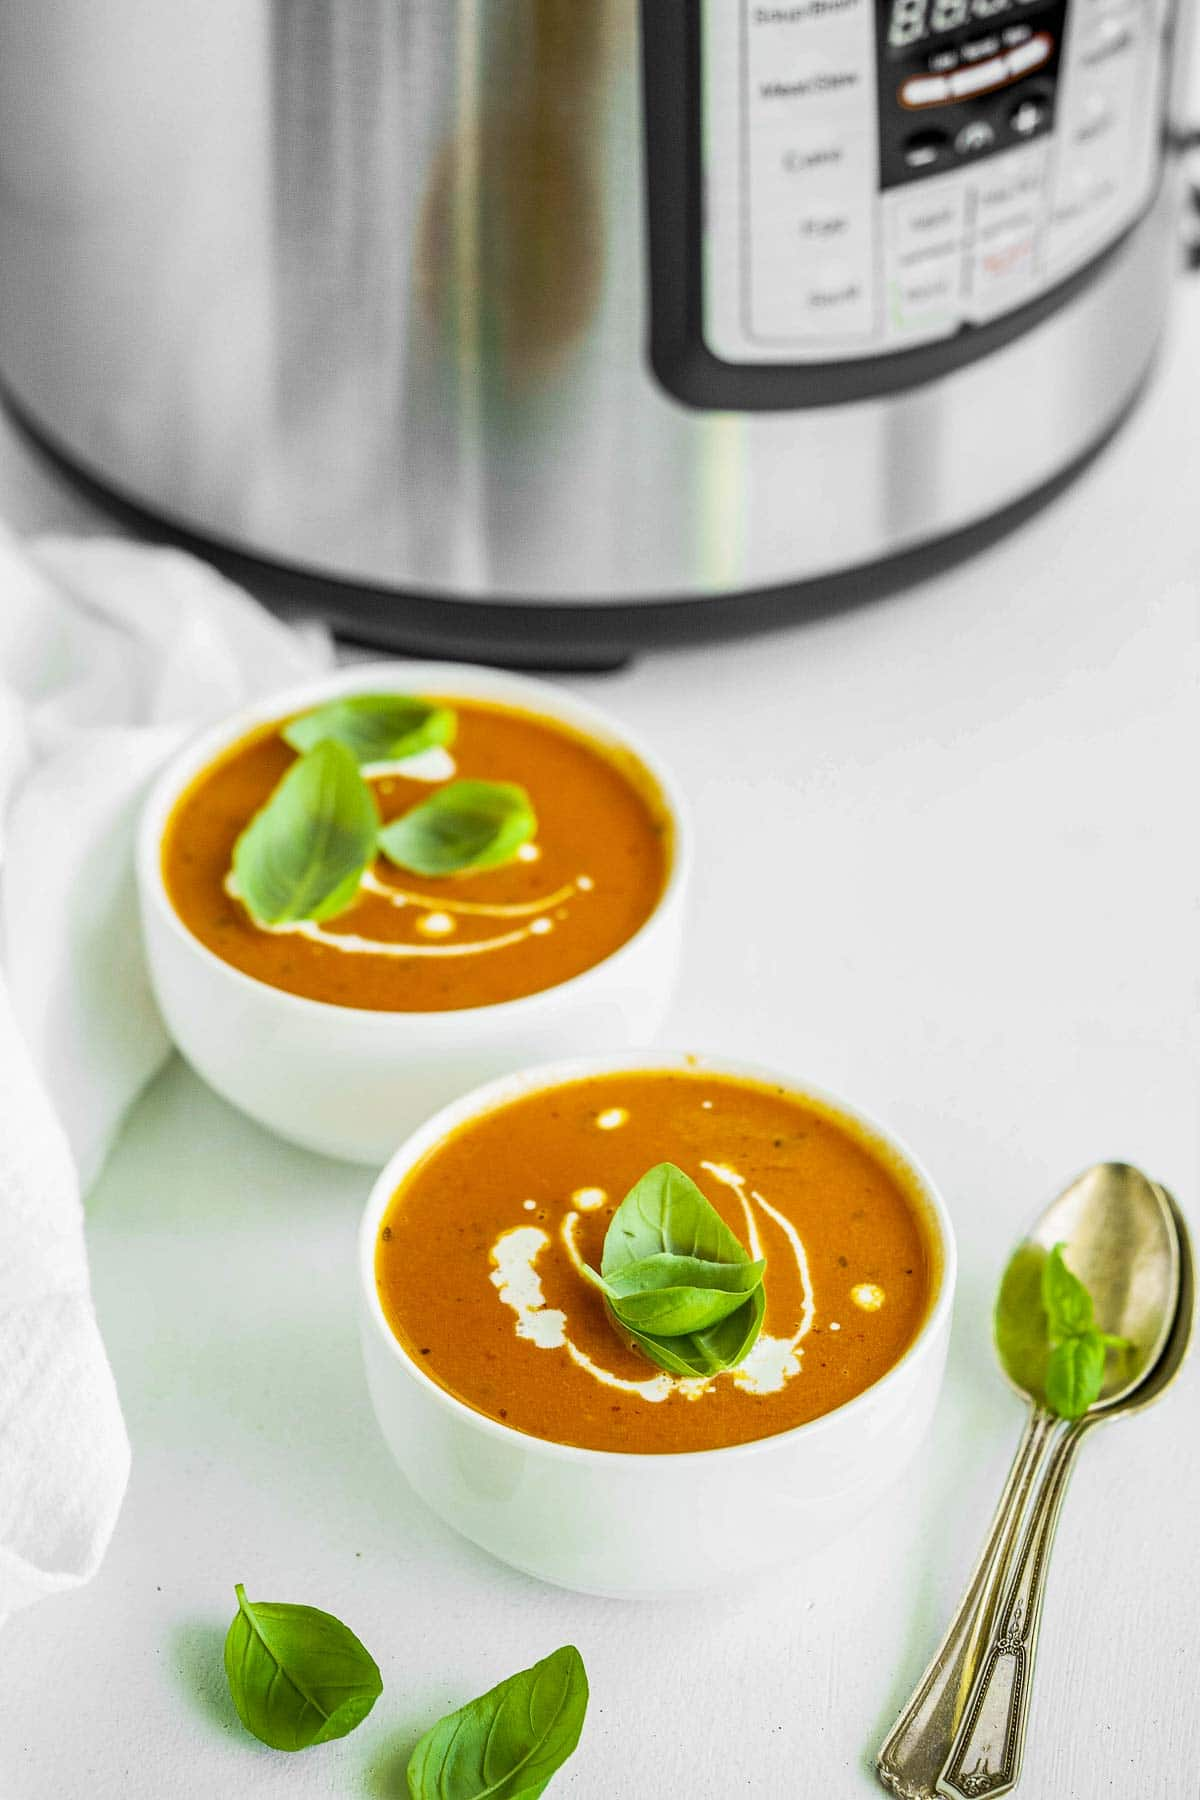 Two bowls of tomato soup beside an Instant Pot.